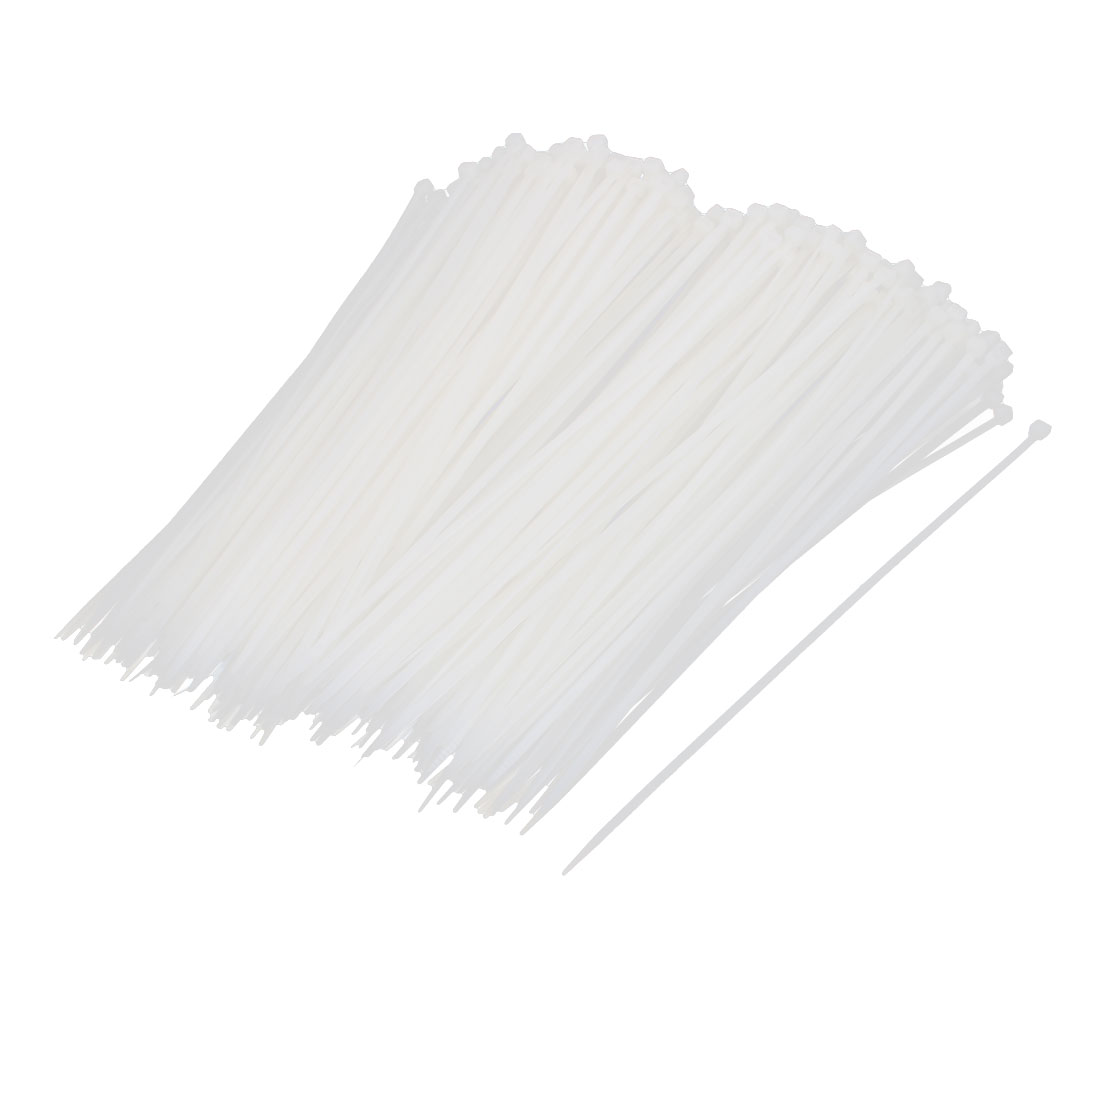 5mm x 250mm Self Locking Reusable Cable Zip Ties Beige 500pcs